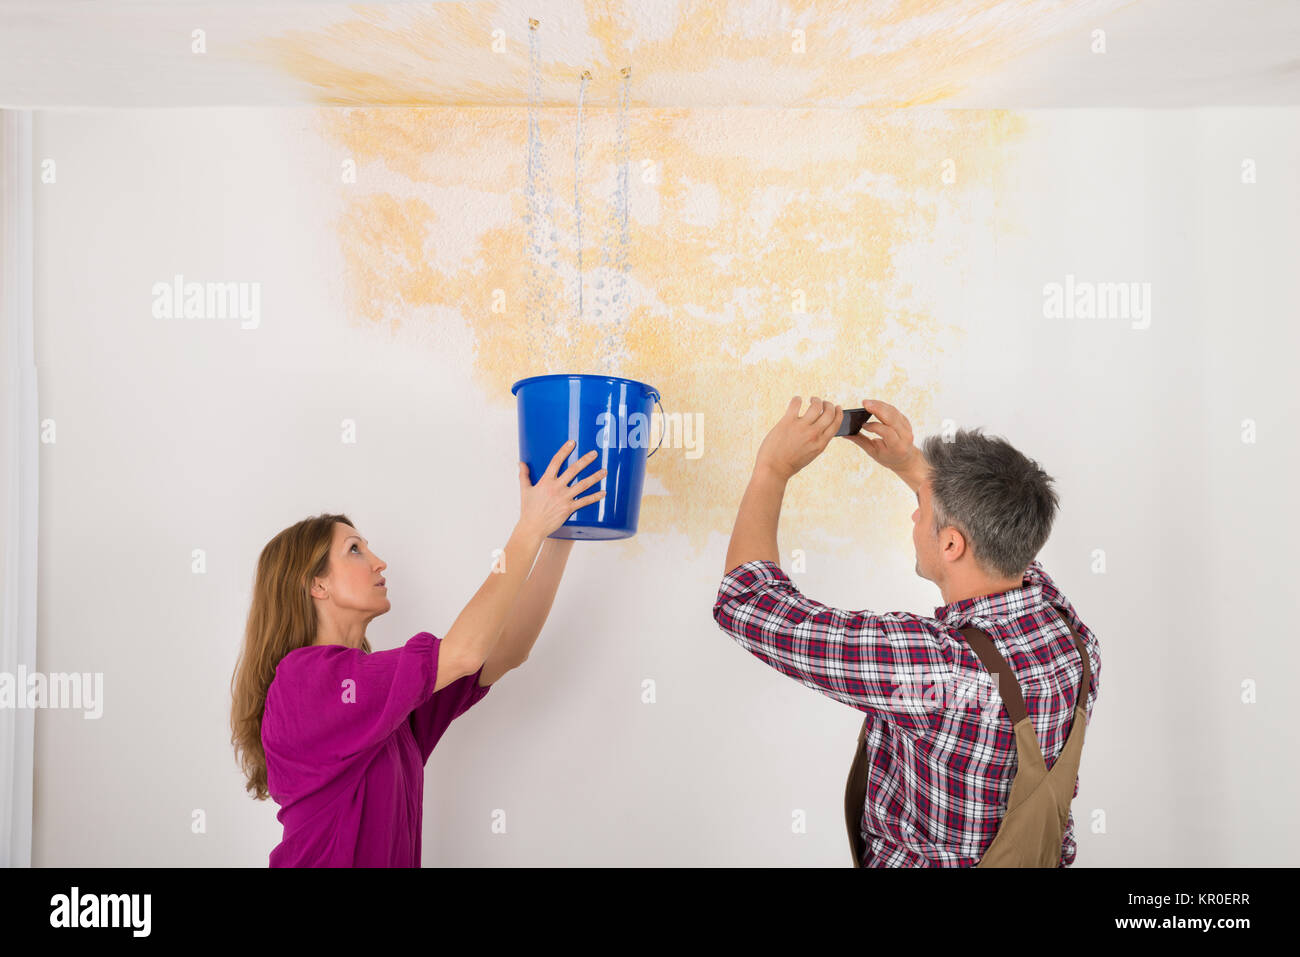 Man Photographing While Woman Collecting Water From Ceiling - Stock Image